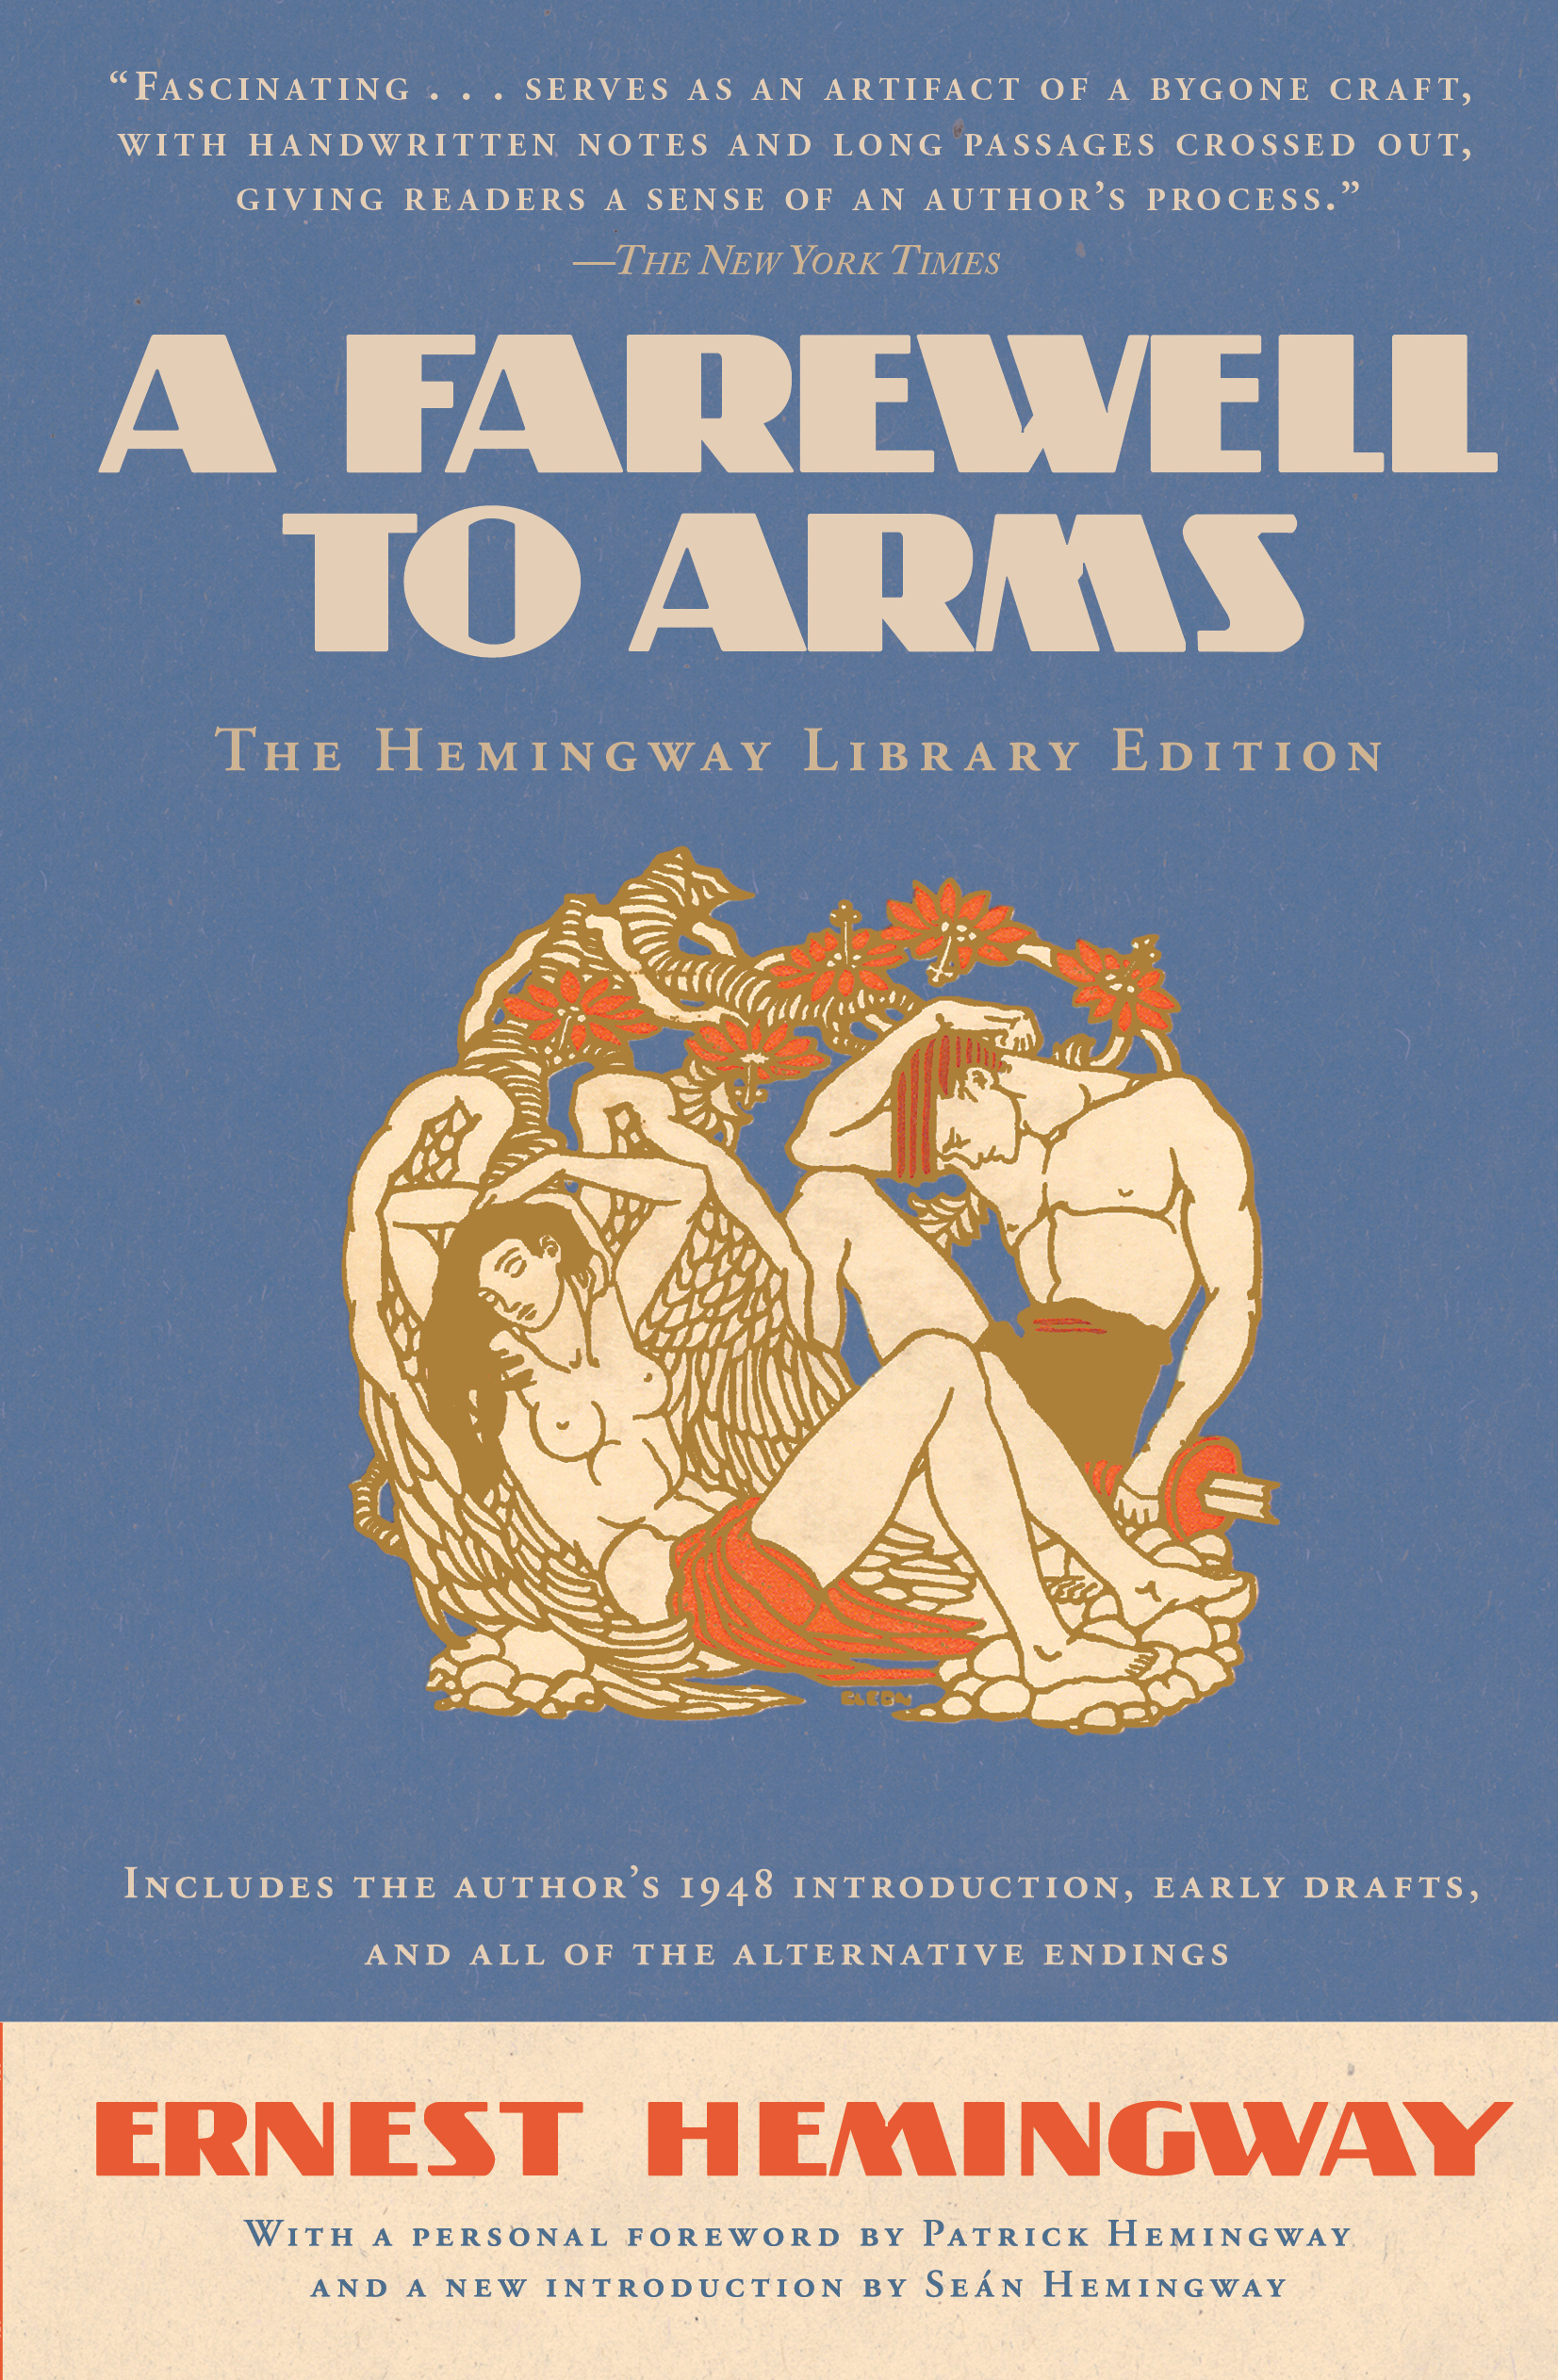 Coming To America Essay A Farewell To Arms Book By Ernest Hemingway Patrick Hemingway   Hr Descriptive Essay Structure also Descriptive Essay Thesis Ernest Hemingway Essay For Whom The Bell Tolls By Ernest Hemingway  History Of Volleyball Essay